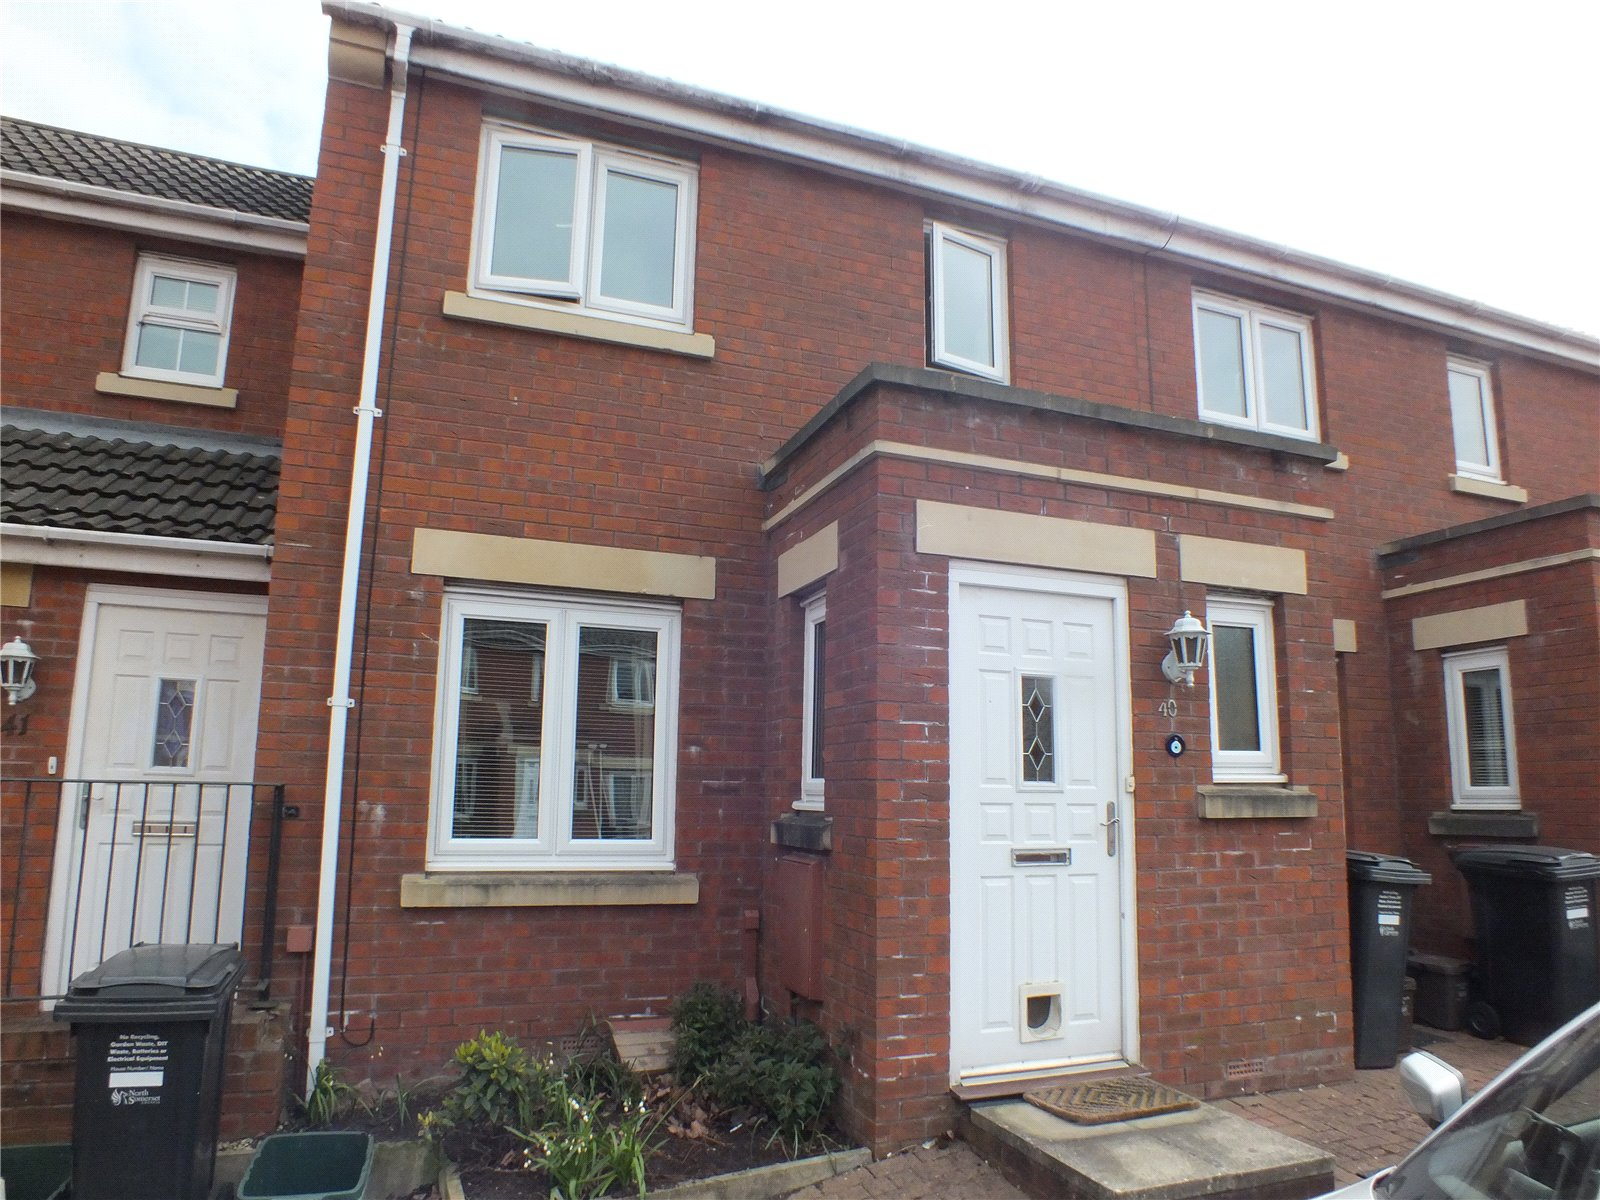 2 Bedrooms Terraced House for sale in Ankatel Close Weston-Super-Mare North Somerset BS23